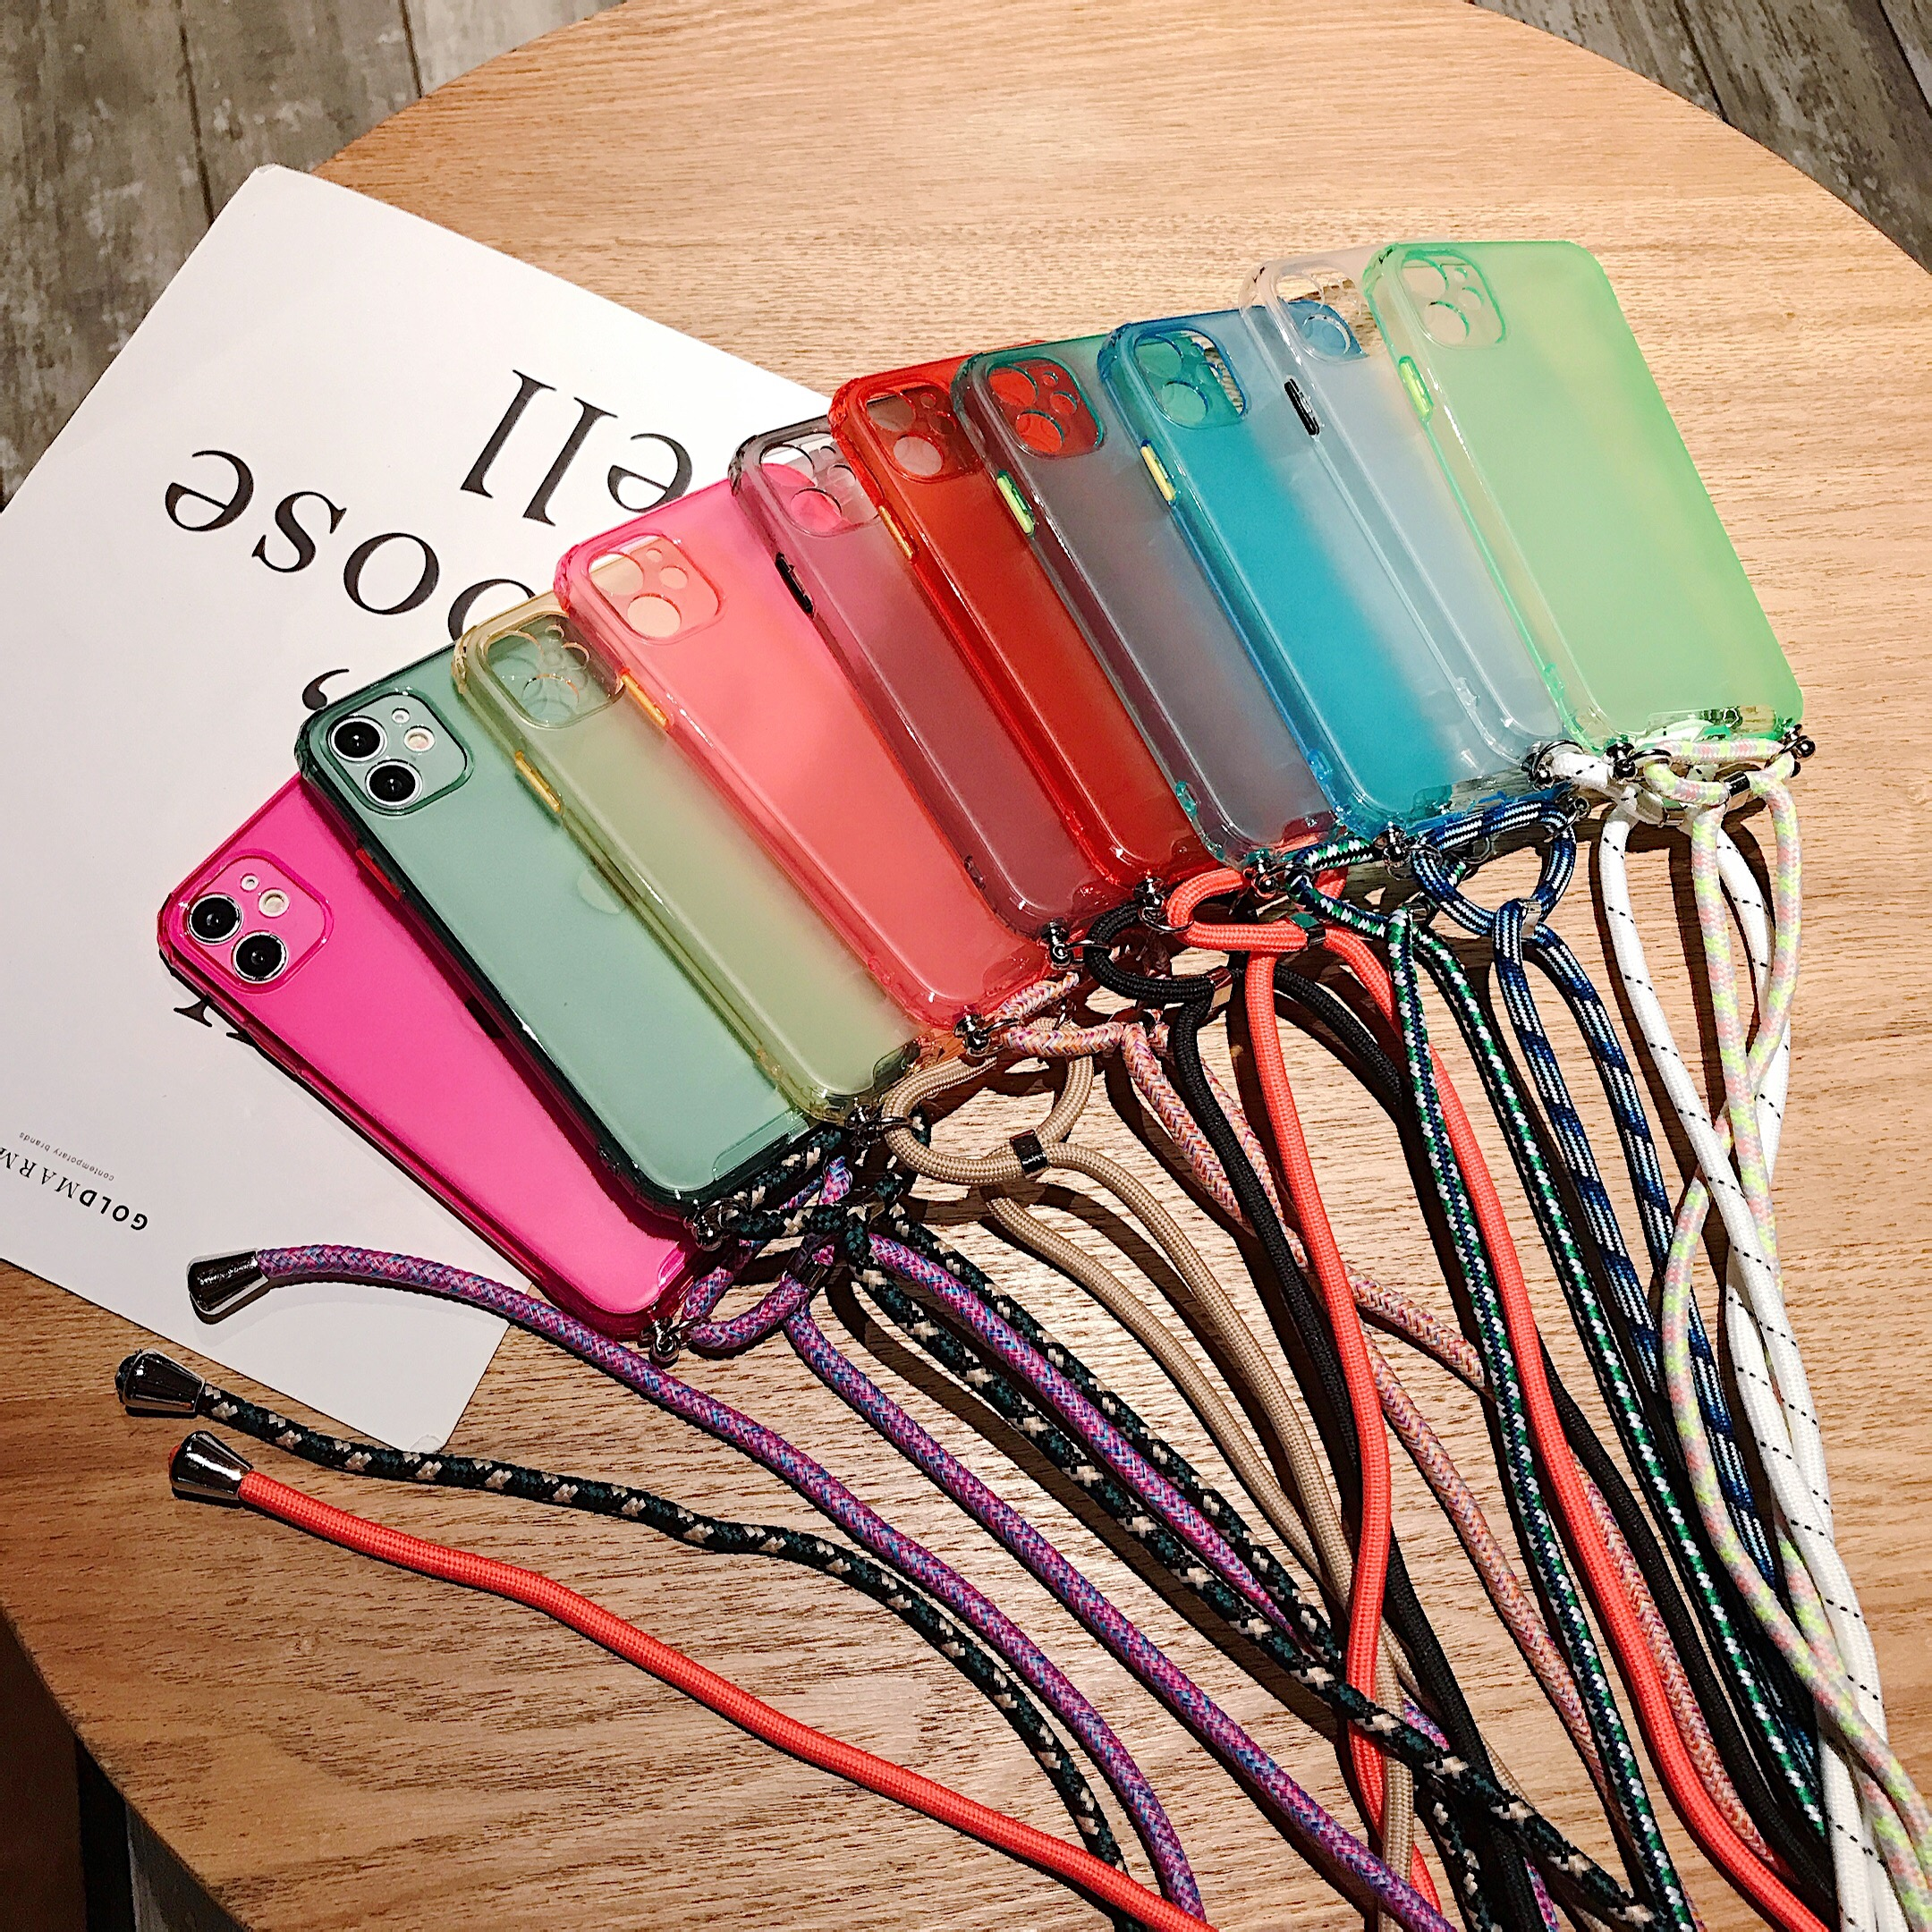 Lanyard Chain Phone Case for iPhone 11Pro 7 8 6 6S Plus XR XS Max X Candy color Ribbon Lanyard Chain Hanging Case for iPhone 11